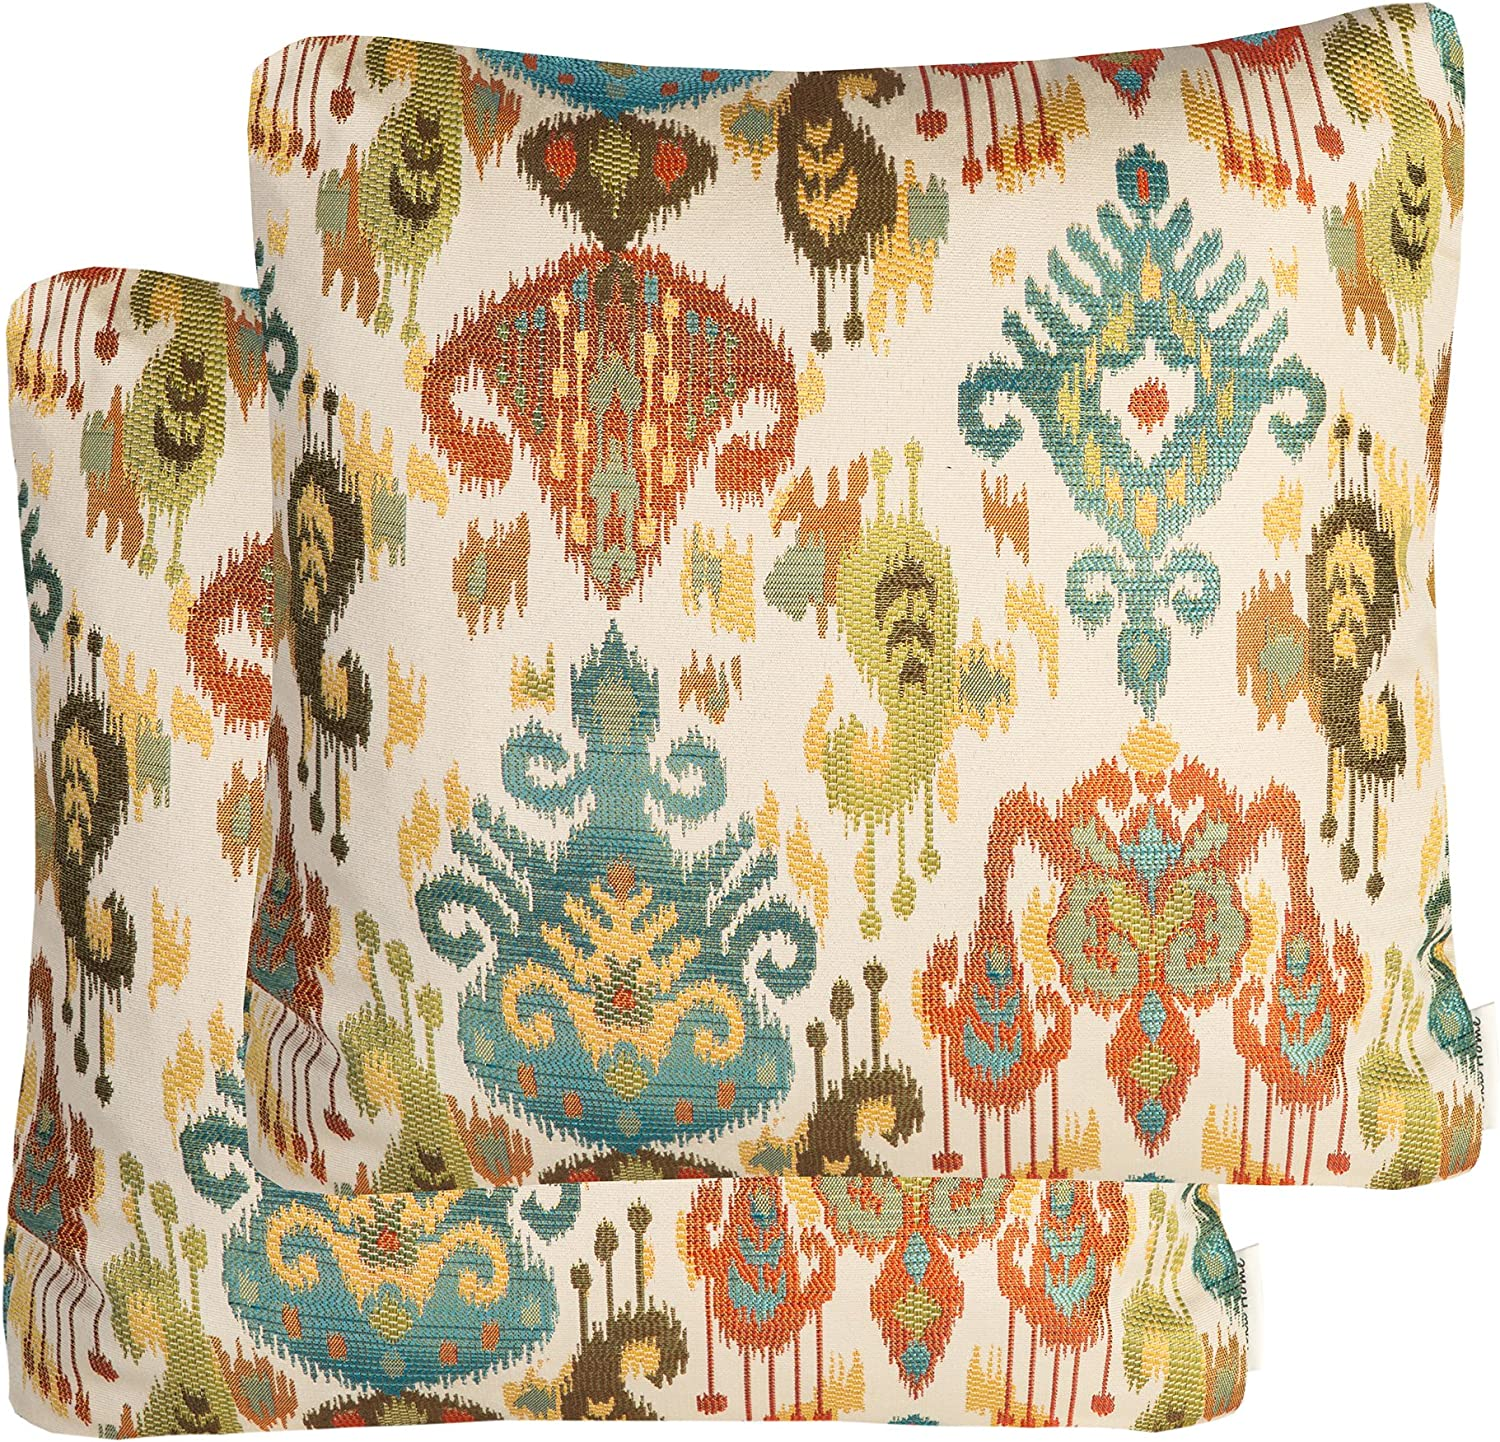 Mika Home Pack of 2 Jacquard Damask Accent Throw Pillow Cases Cushion Covers for 20X20 Inserts Cream Teal Rust